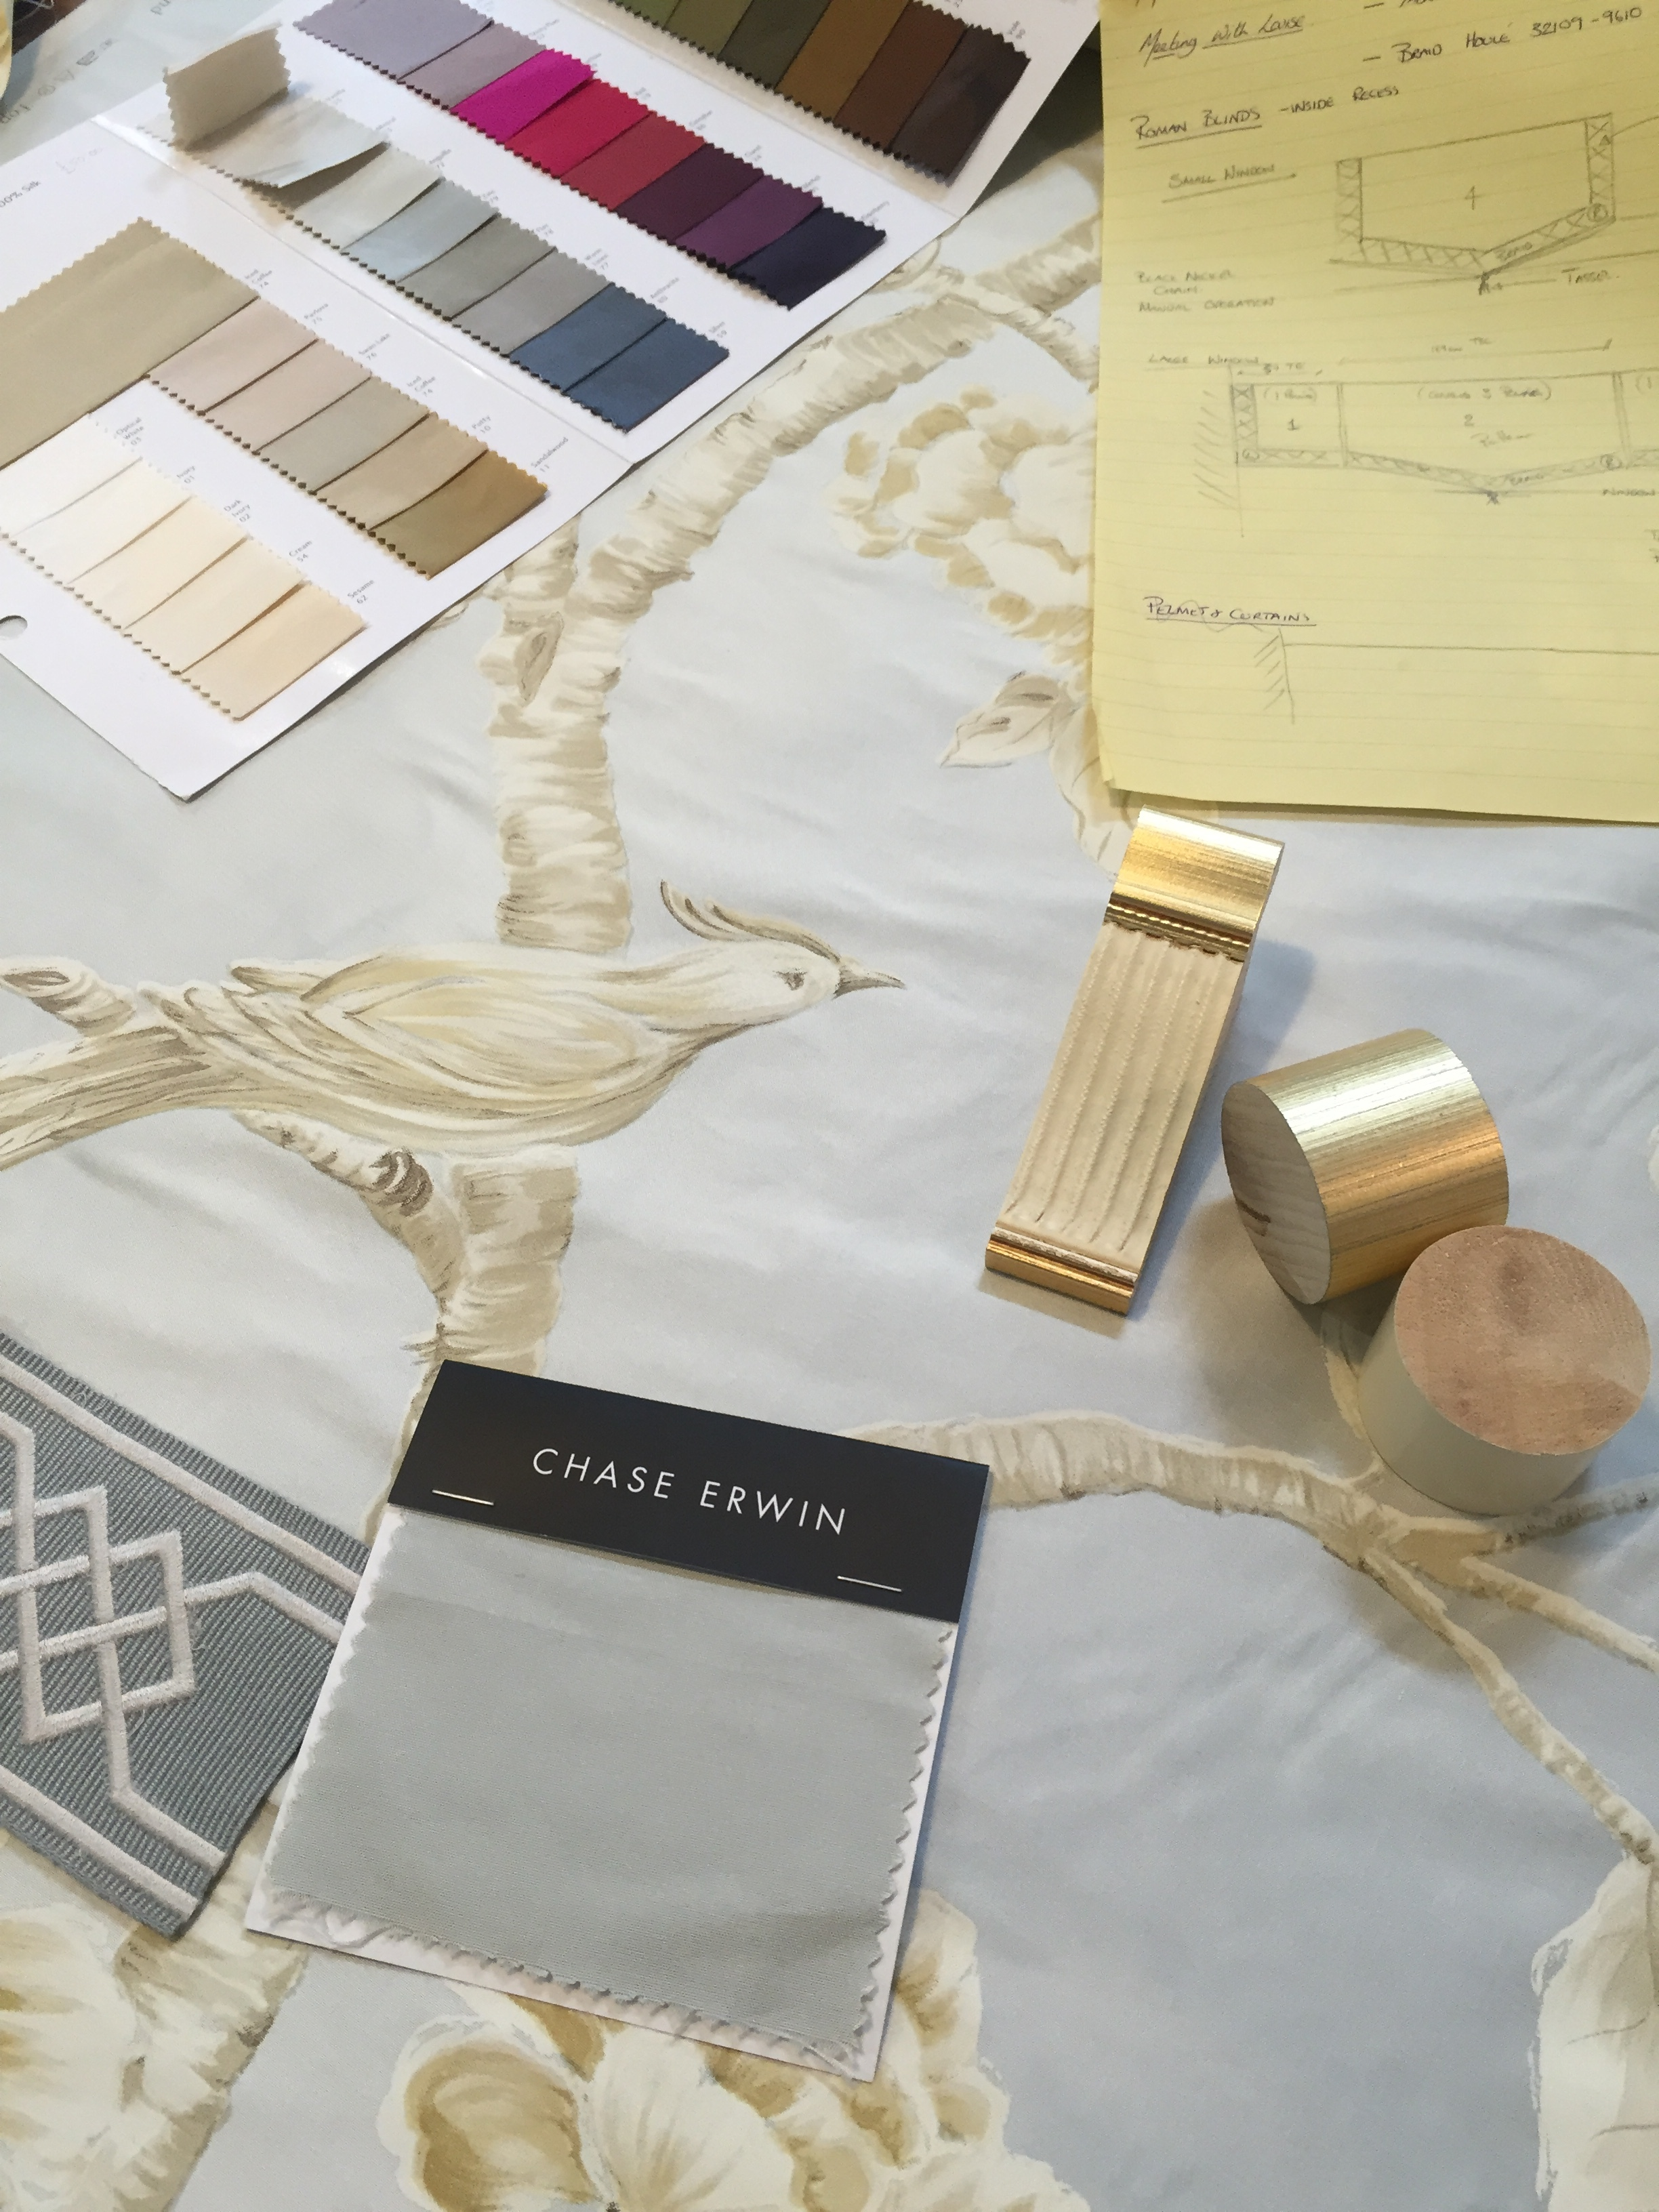 Bringing together the various components of an intricate window treatment design.